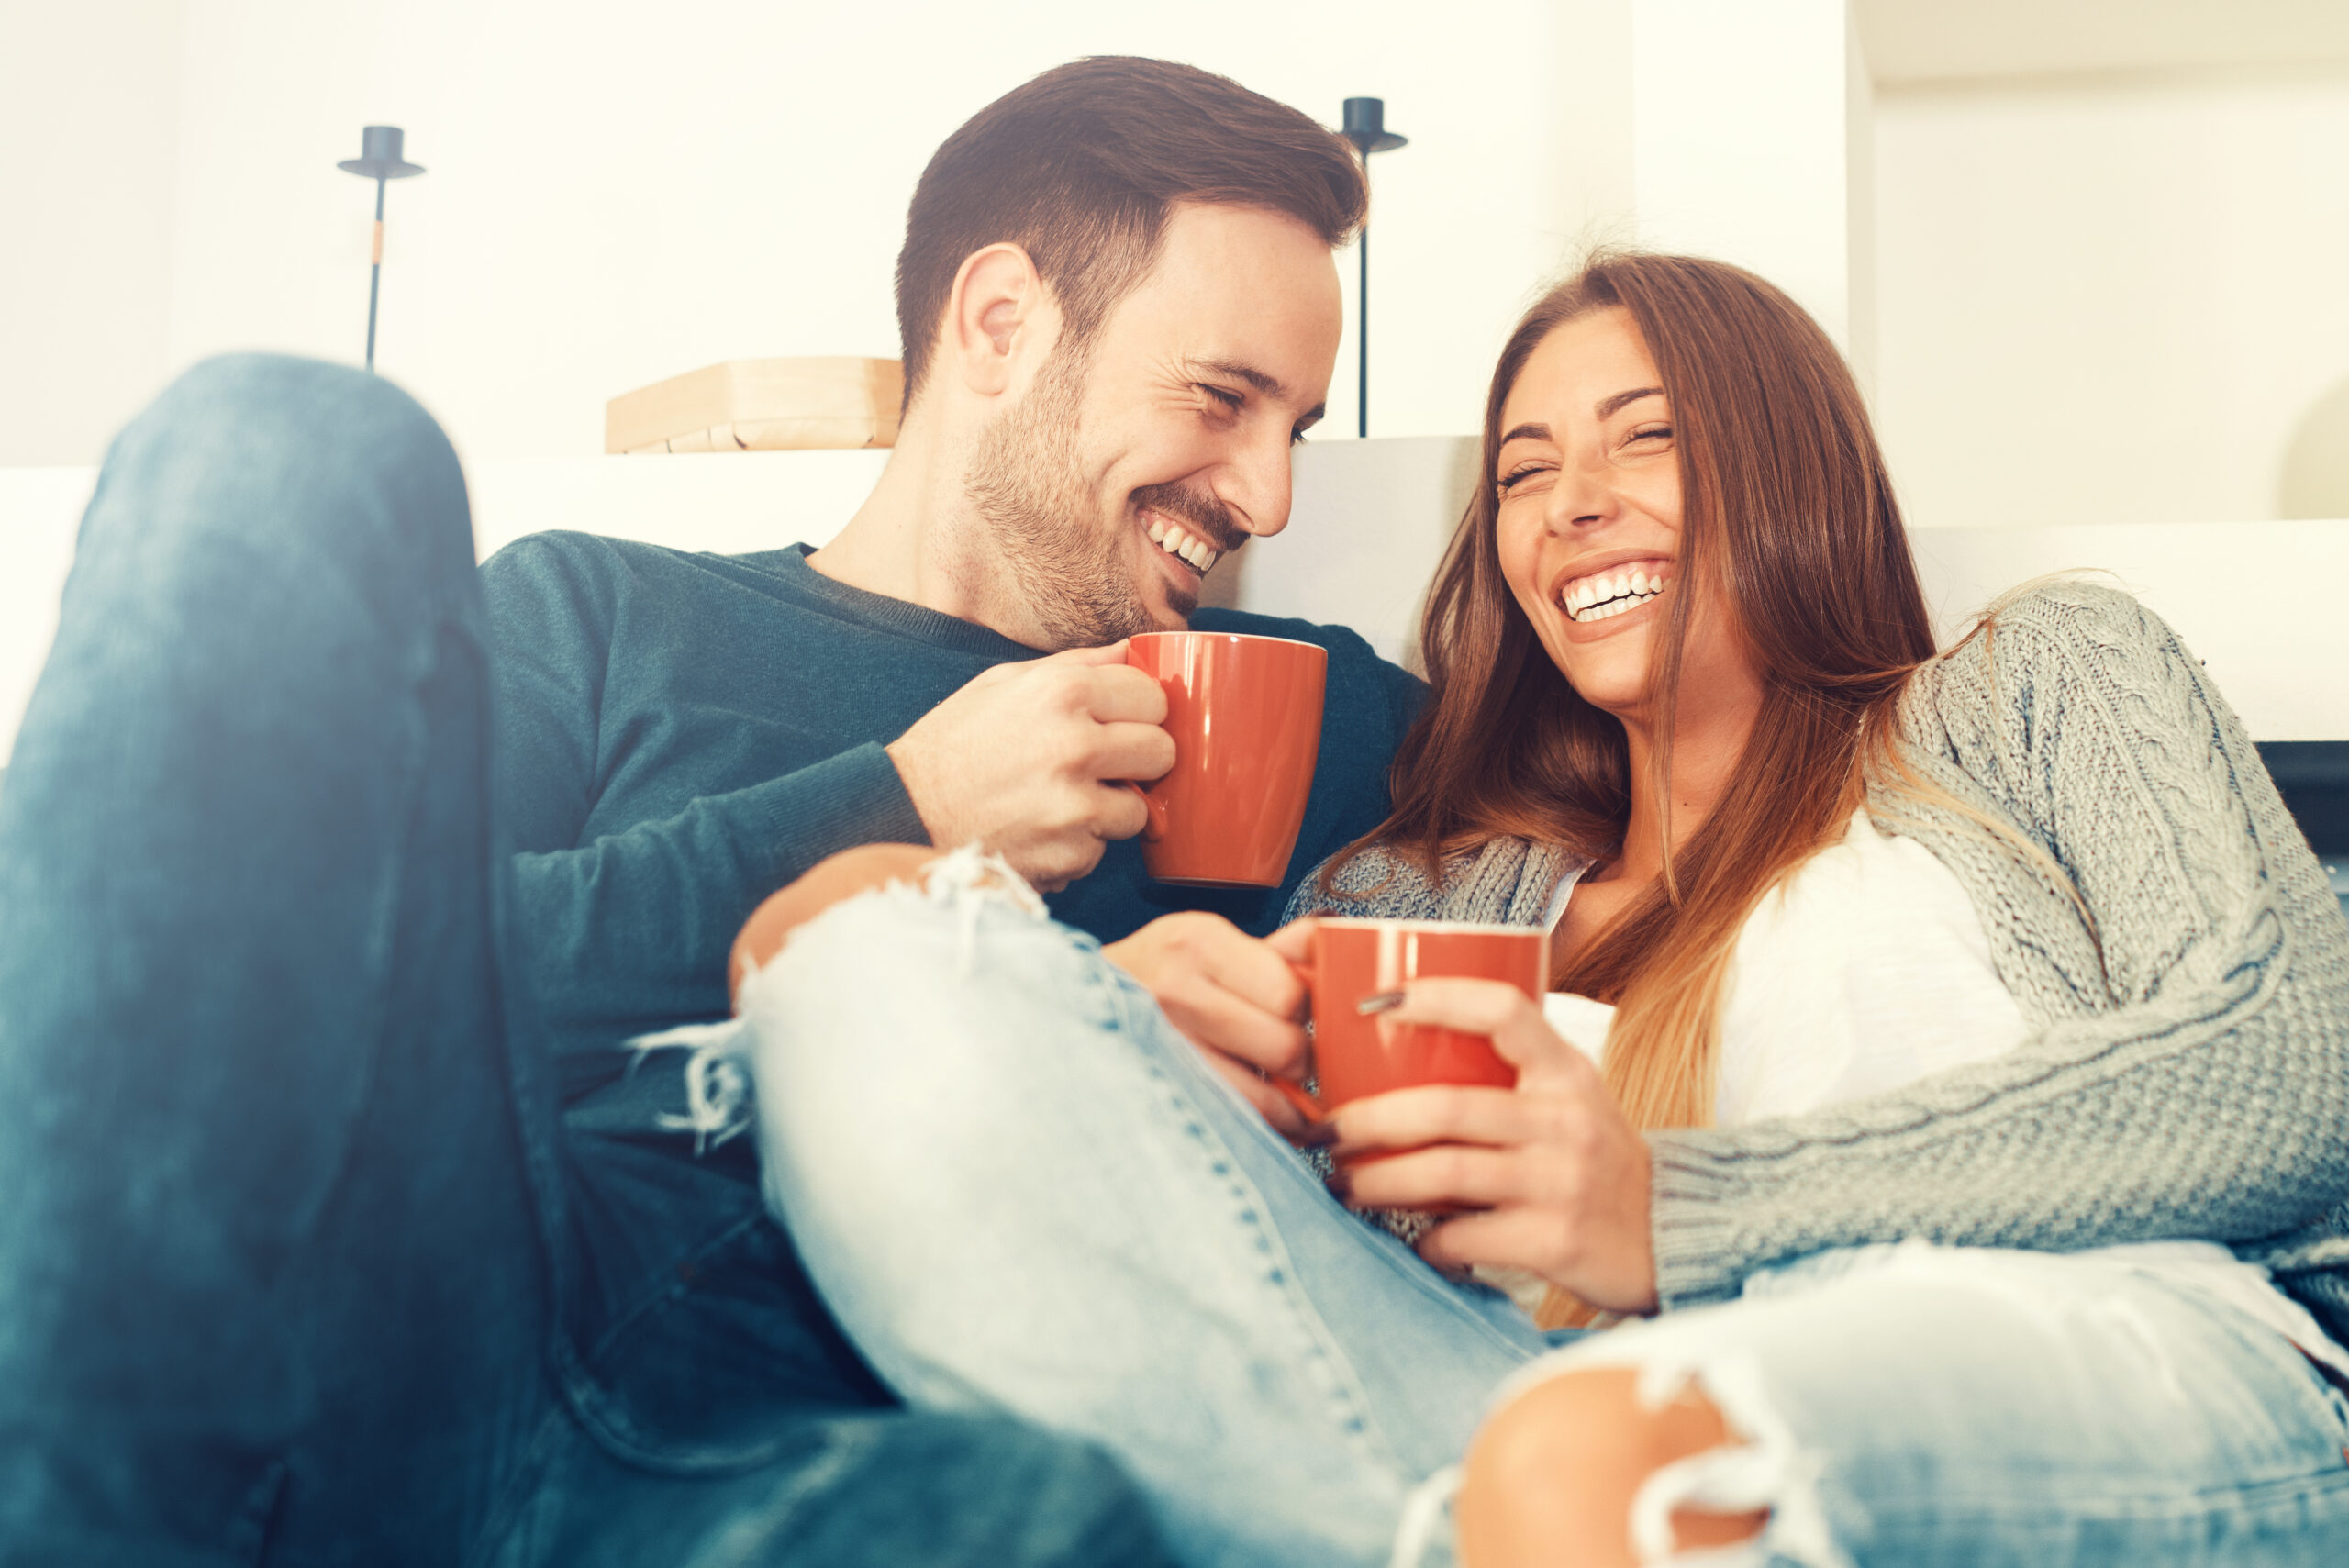 best marriage books for couples - cute white couple sitting on the couch with red mugs and laughing together